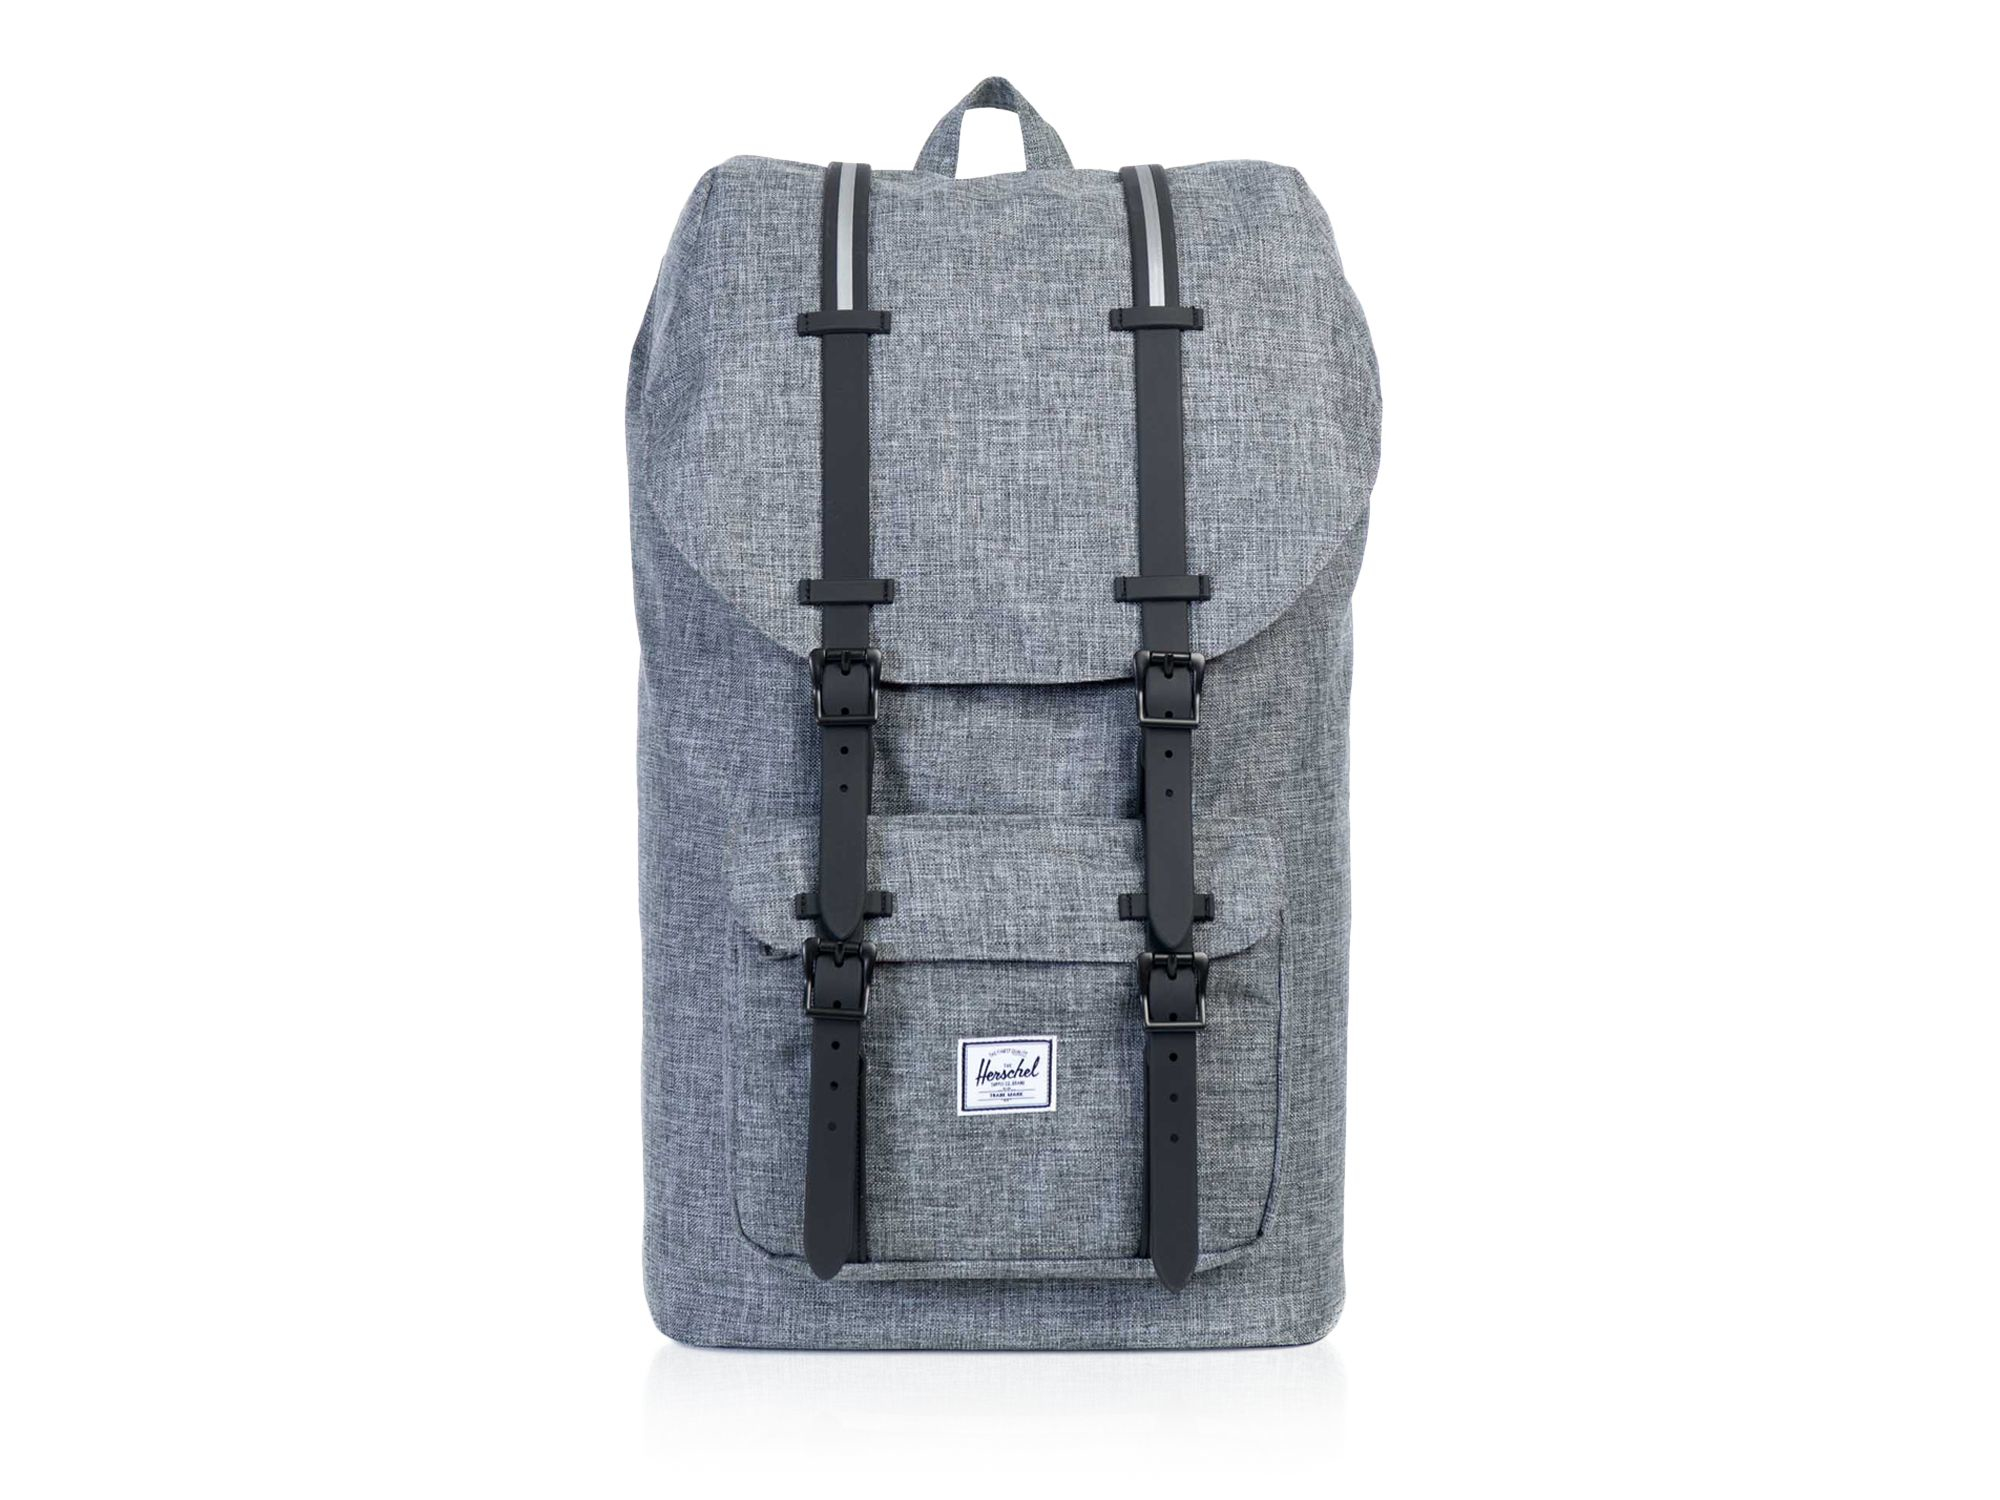 0c16453e504 Herschel Supply Co. Dawson Backpack in Gray for Men - Lyst